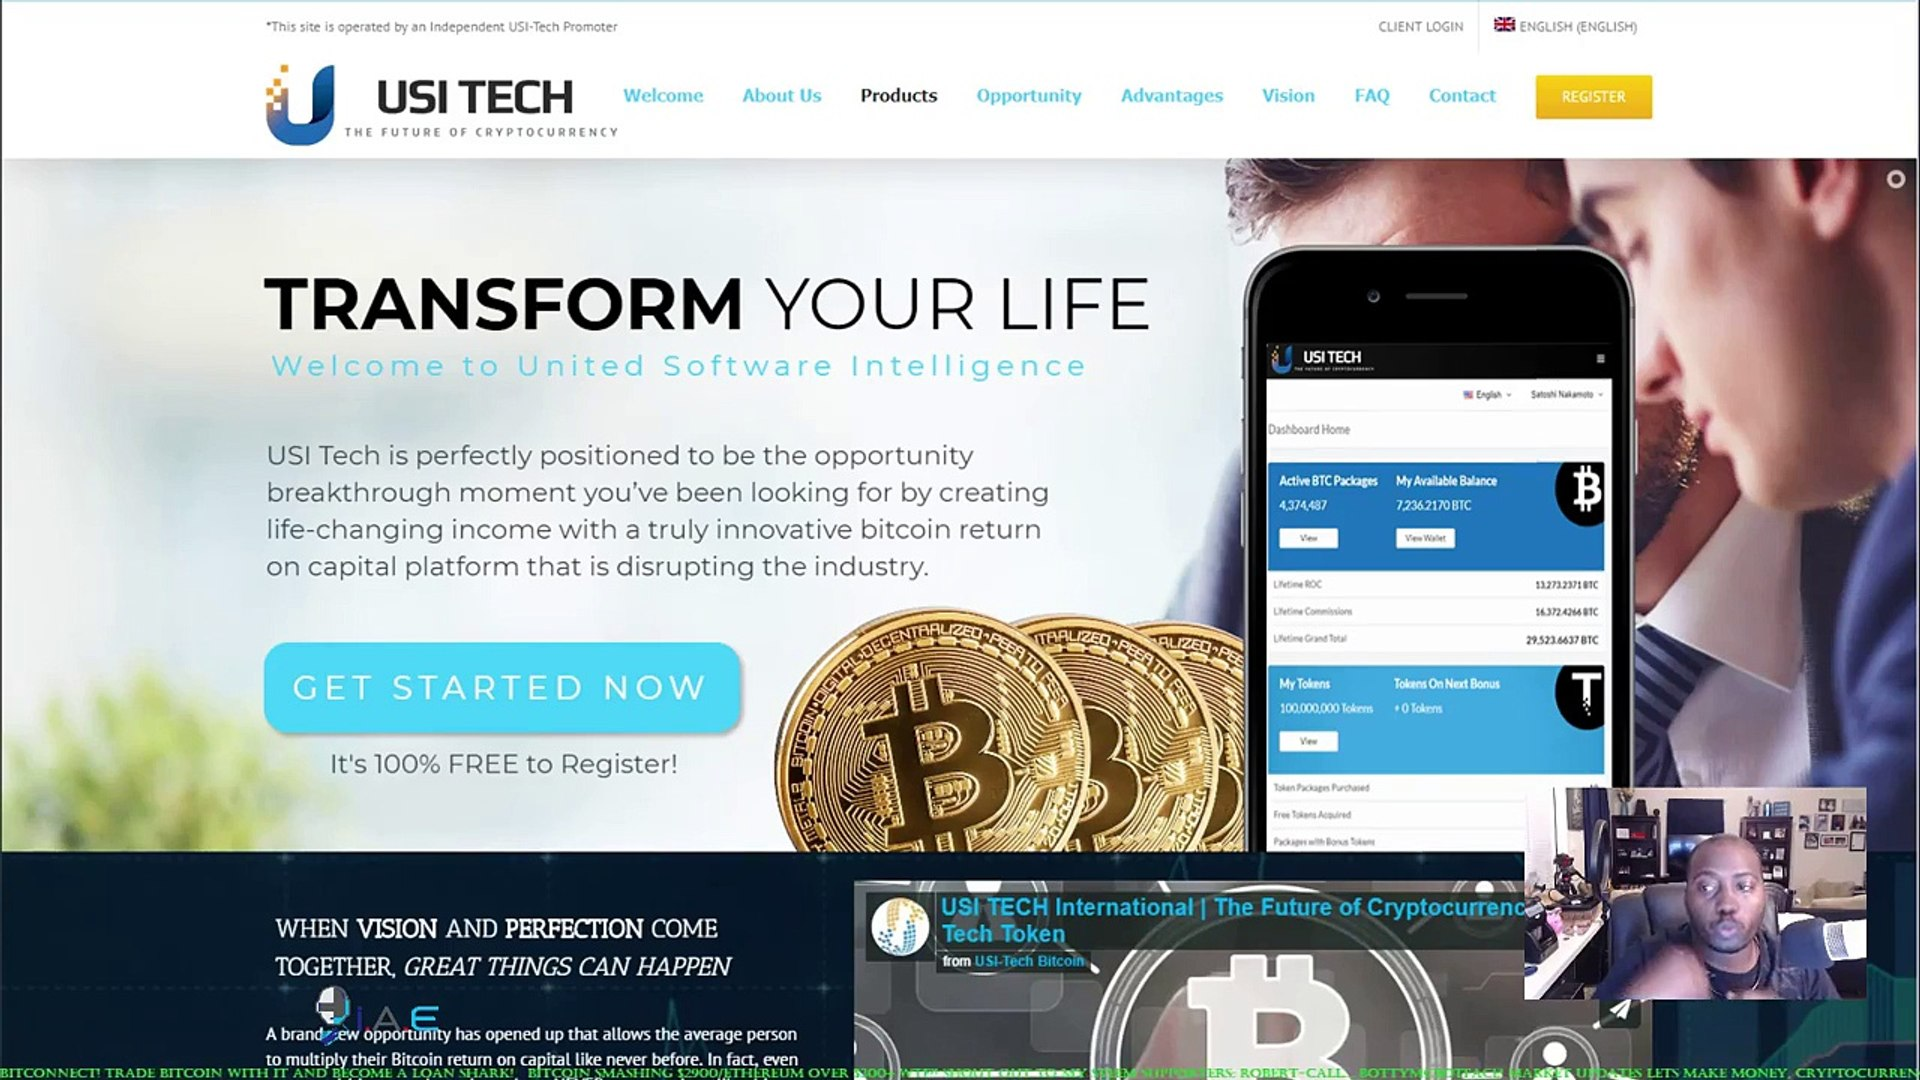 USI-Tech Is The ONLY Way To Secure Financial Freedom Beyond The HYIP's In The Crypto-Space!